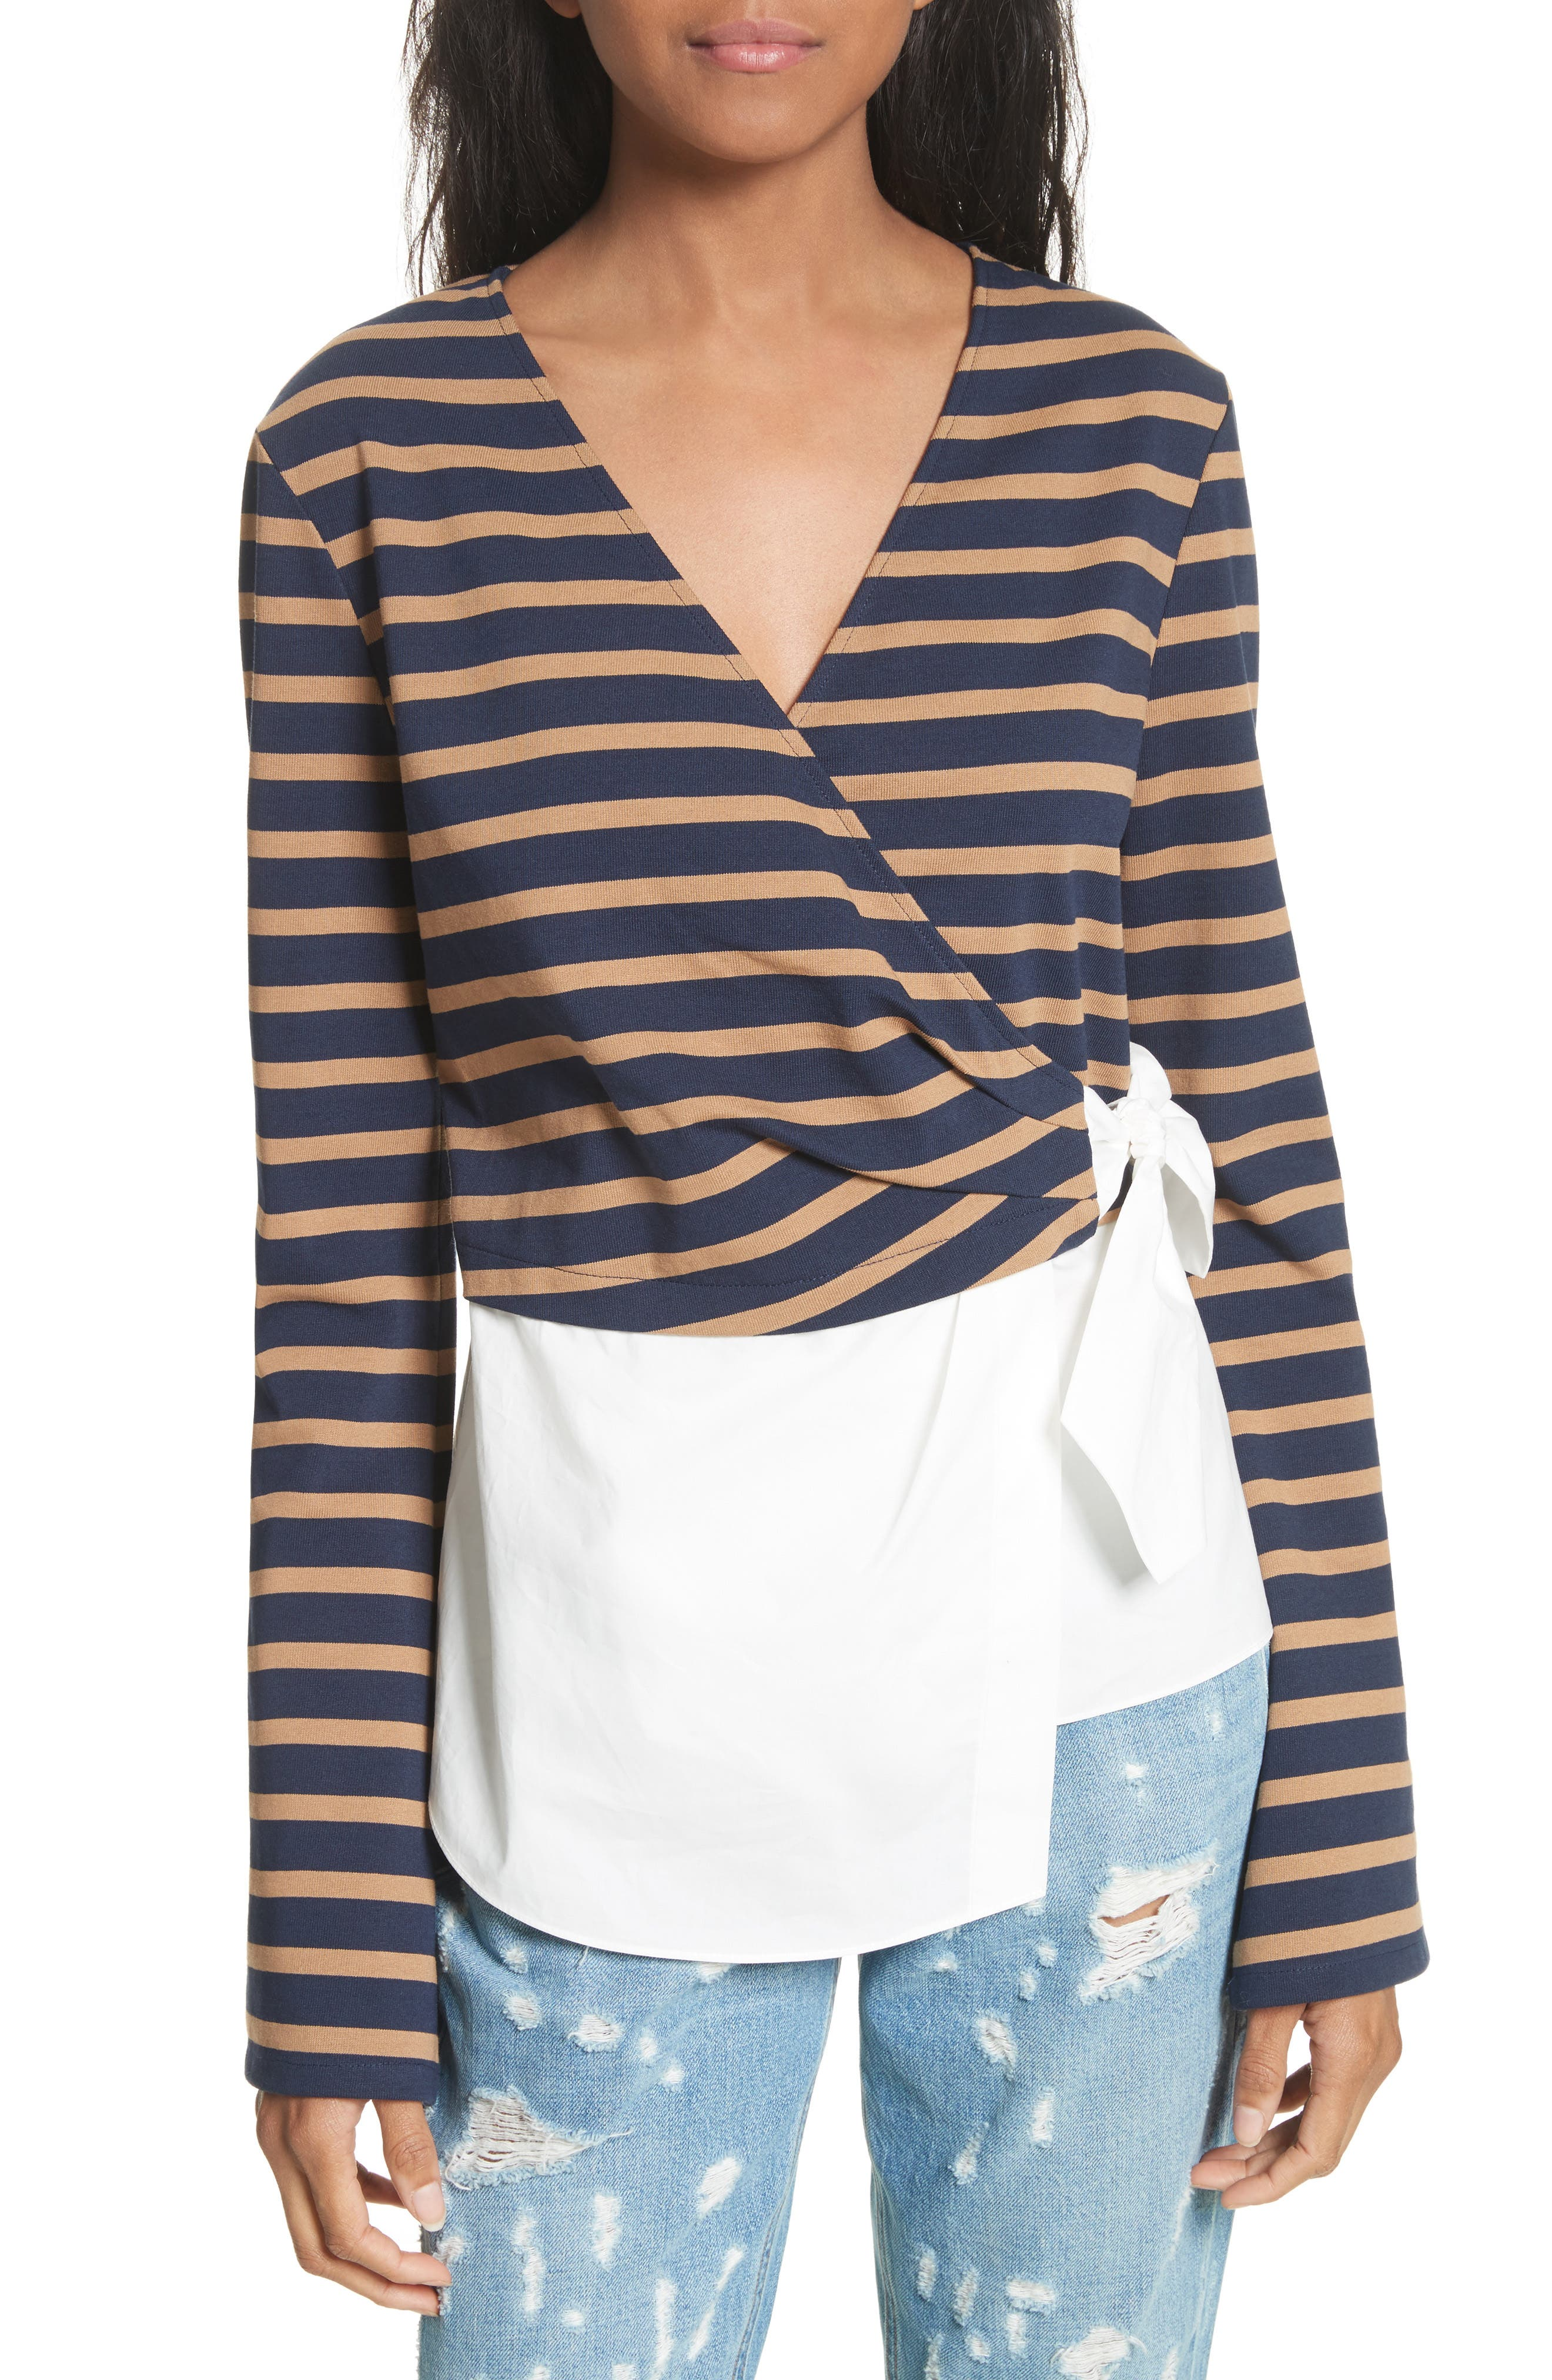 Derek Lam 10 Crosby Stripe Wrap Top with Poplin Shirting Combo